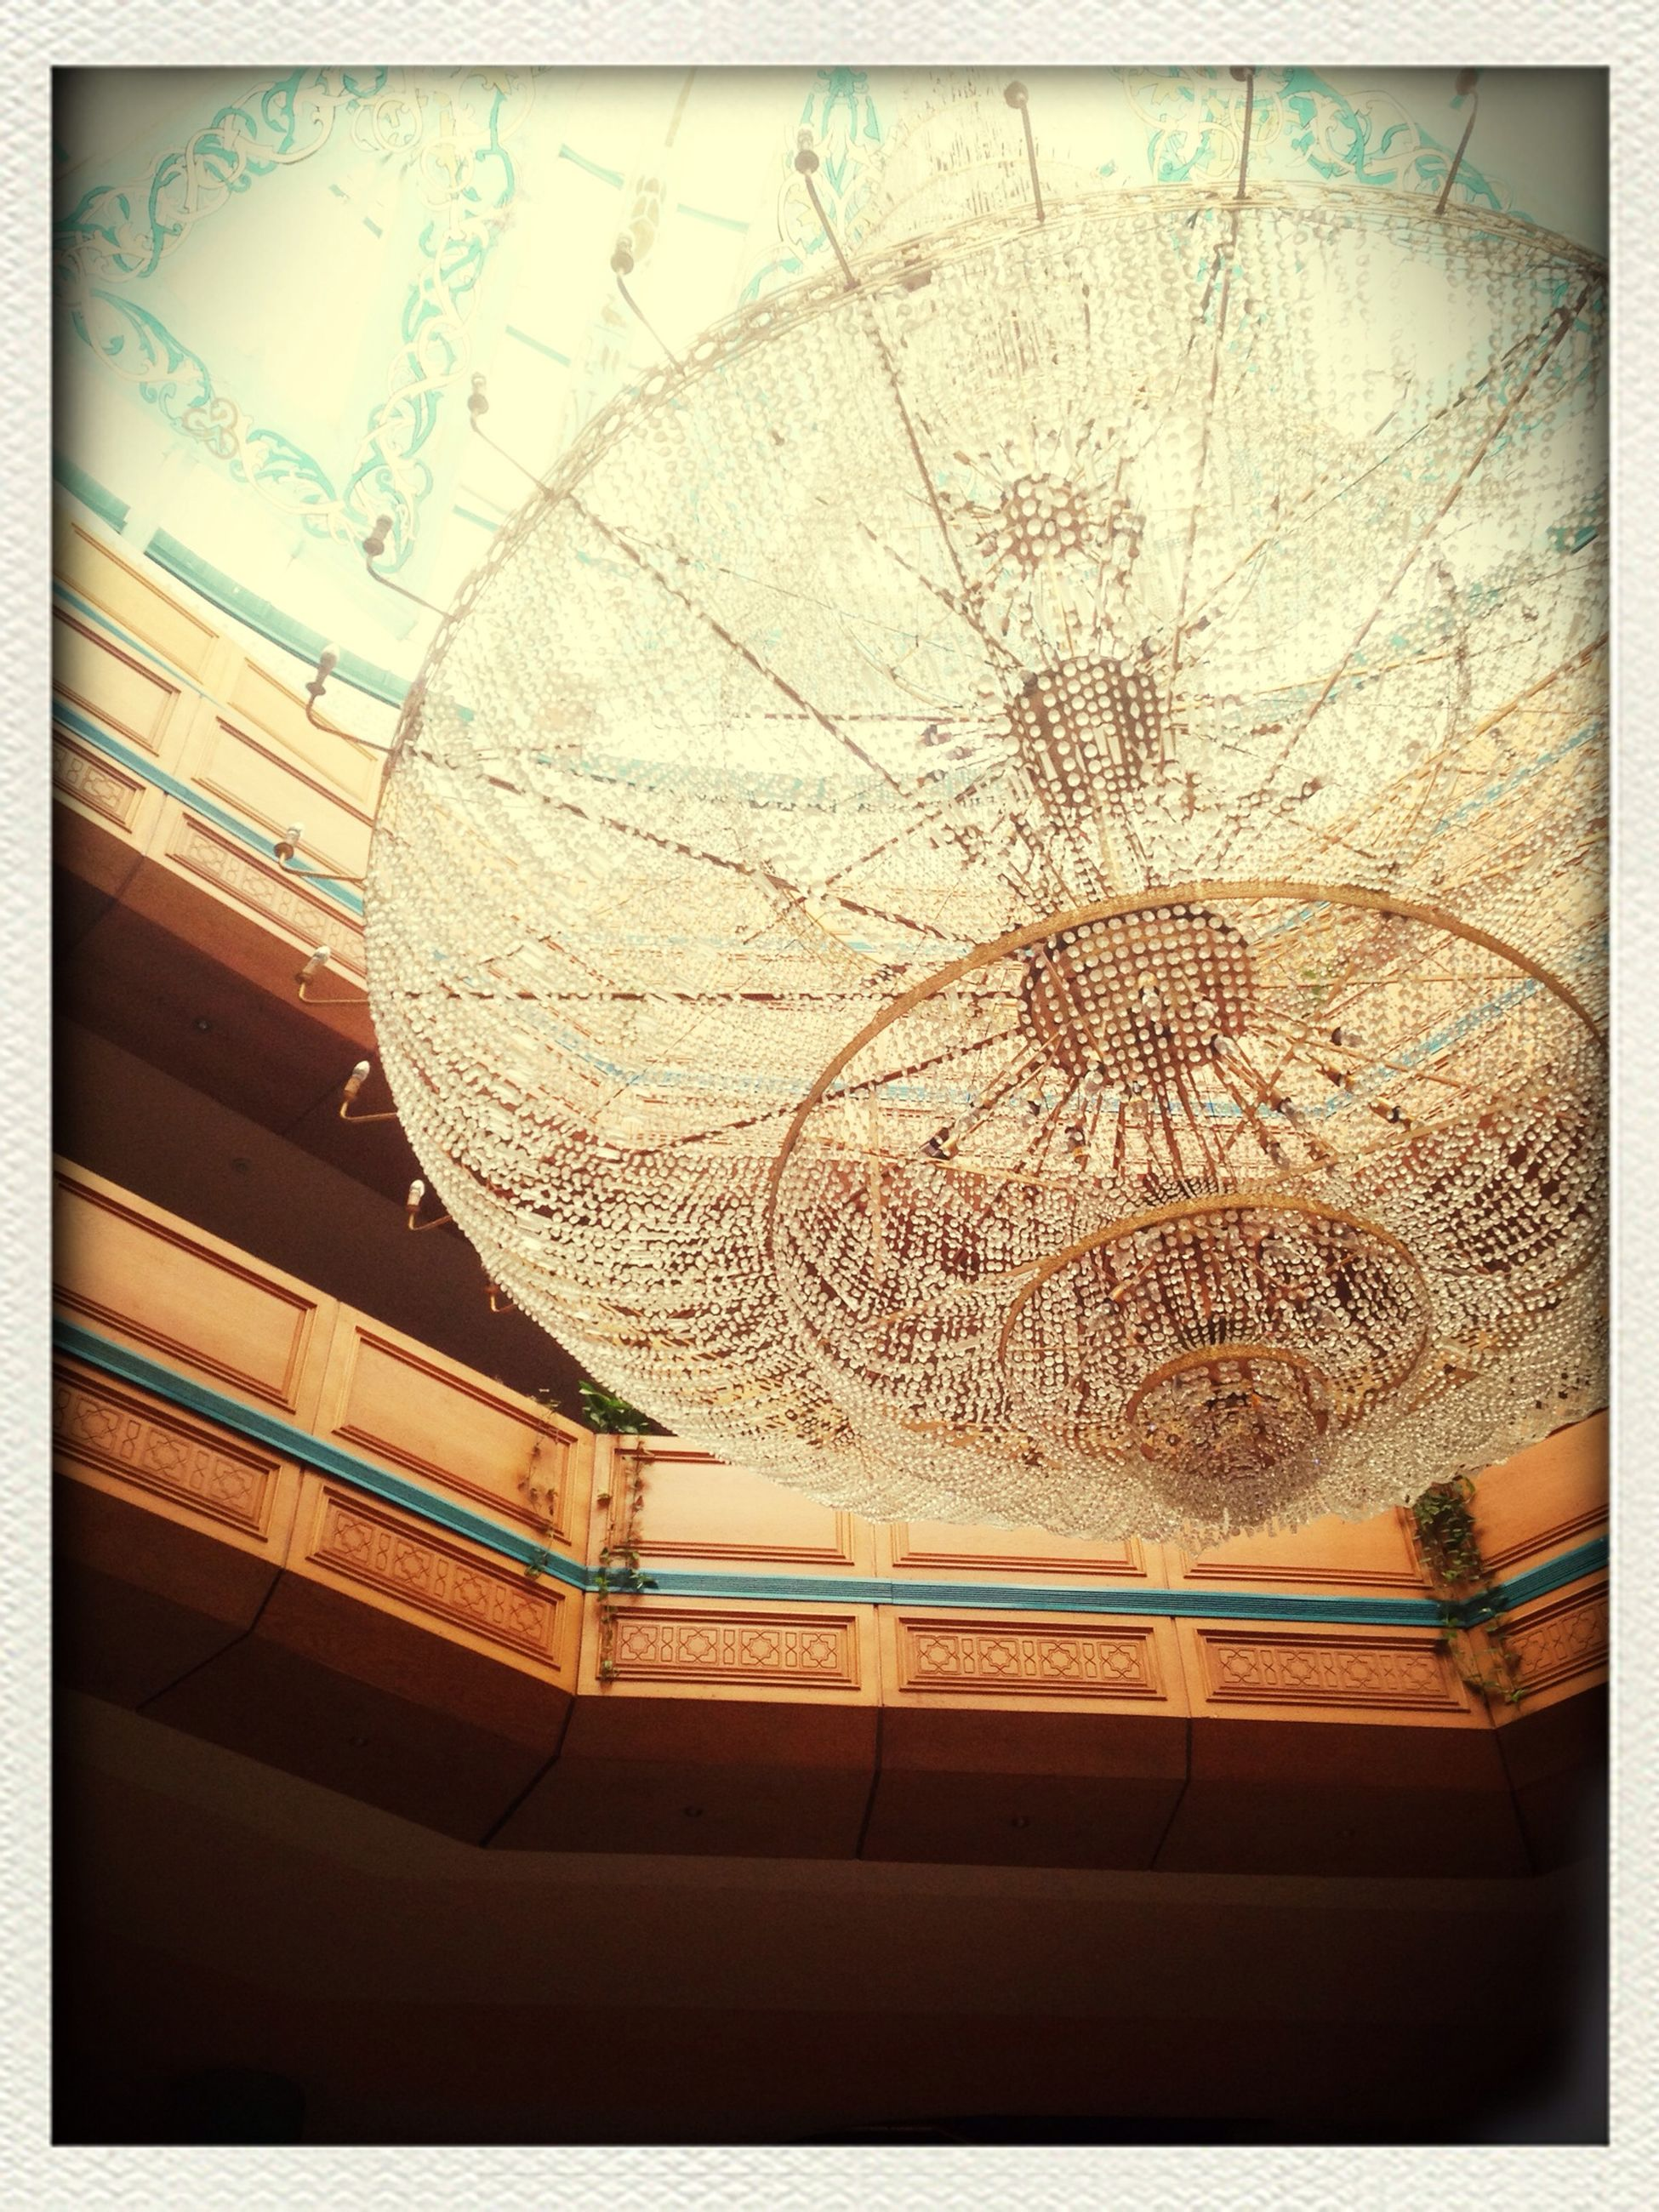 indoors, transfer print, auto post production filter, ceiling, architecture, built structure, pattern, low angle view, design, art and craft, glass - material, art, window, illuminated, creativity, ornate, lighting equipment, chandelier, close-up, decoration